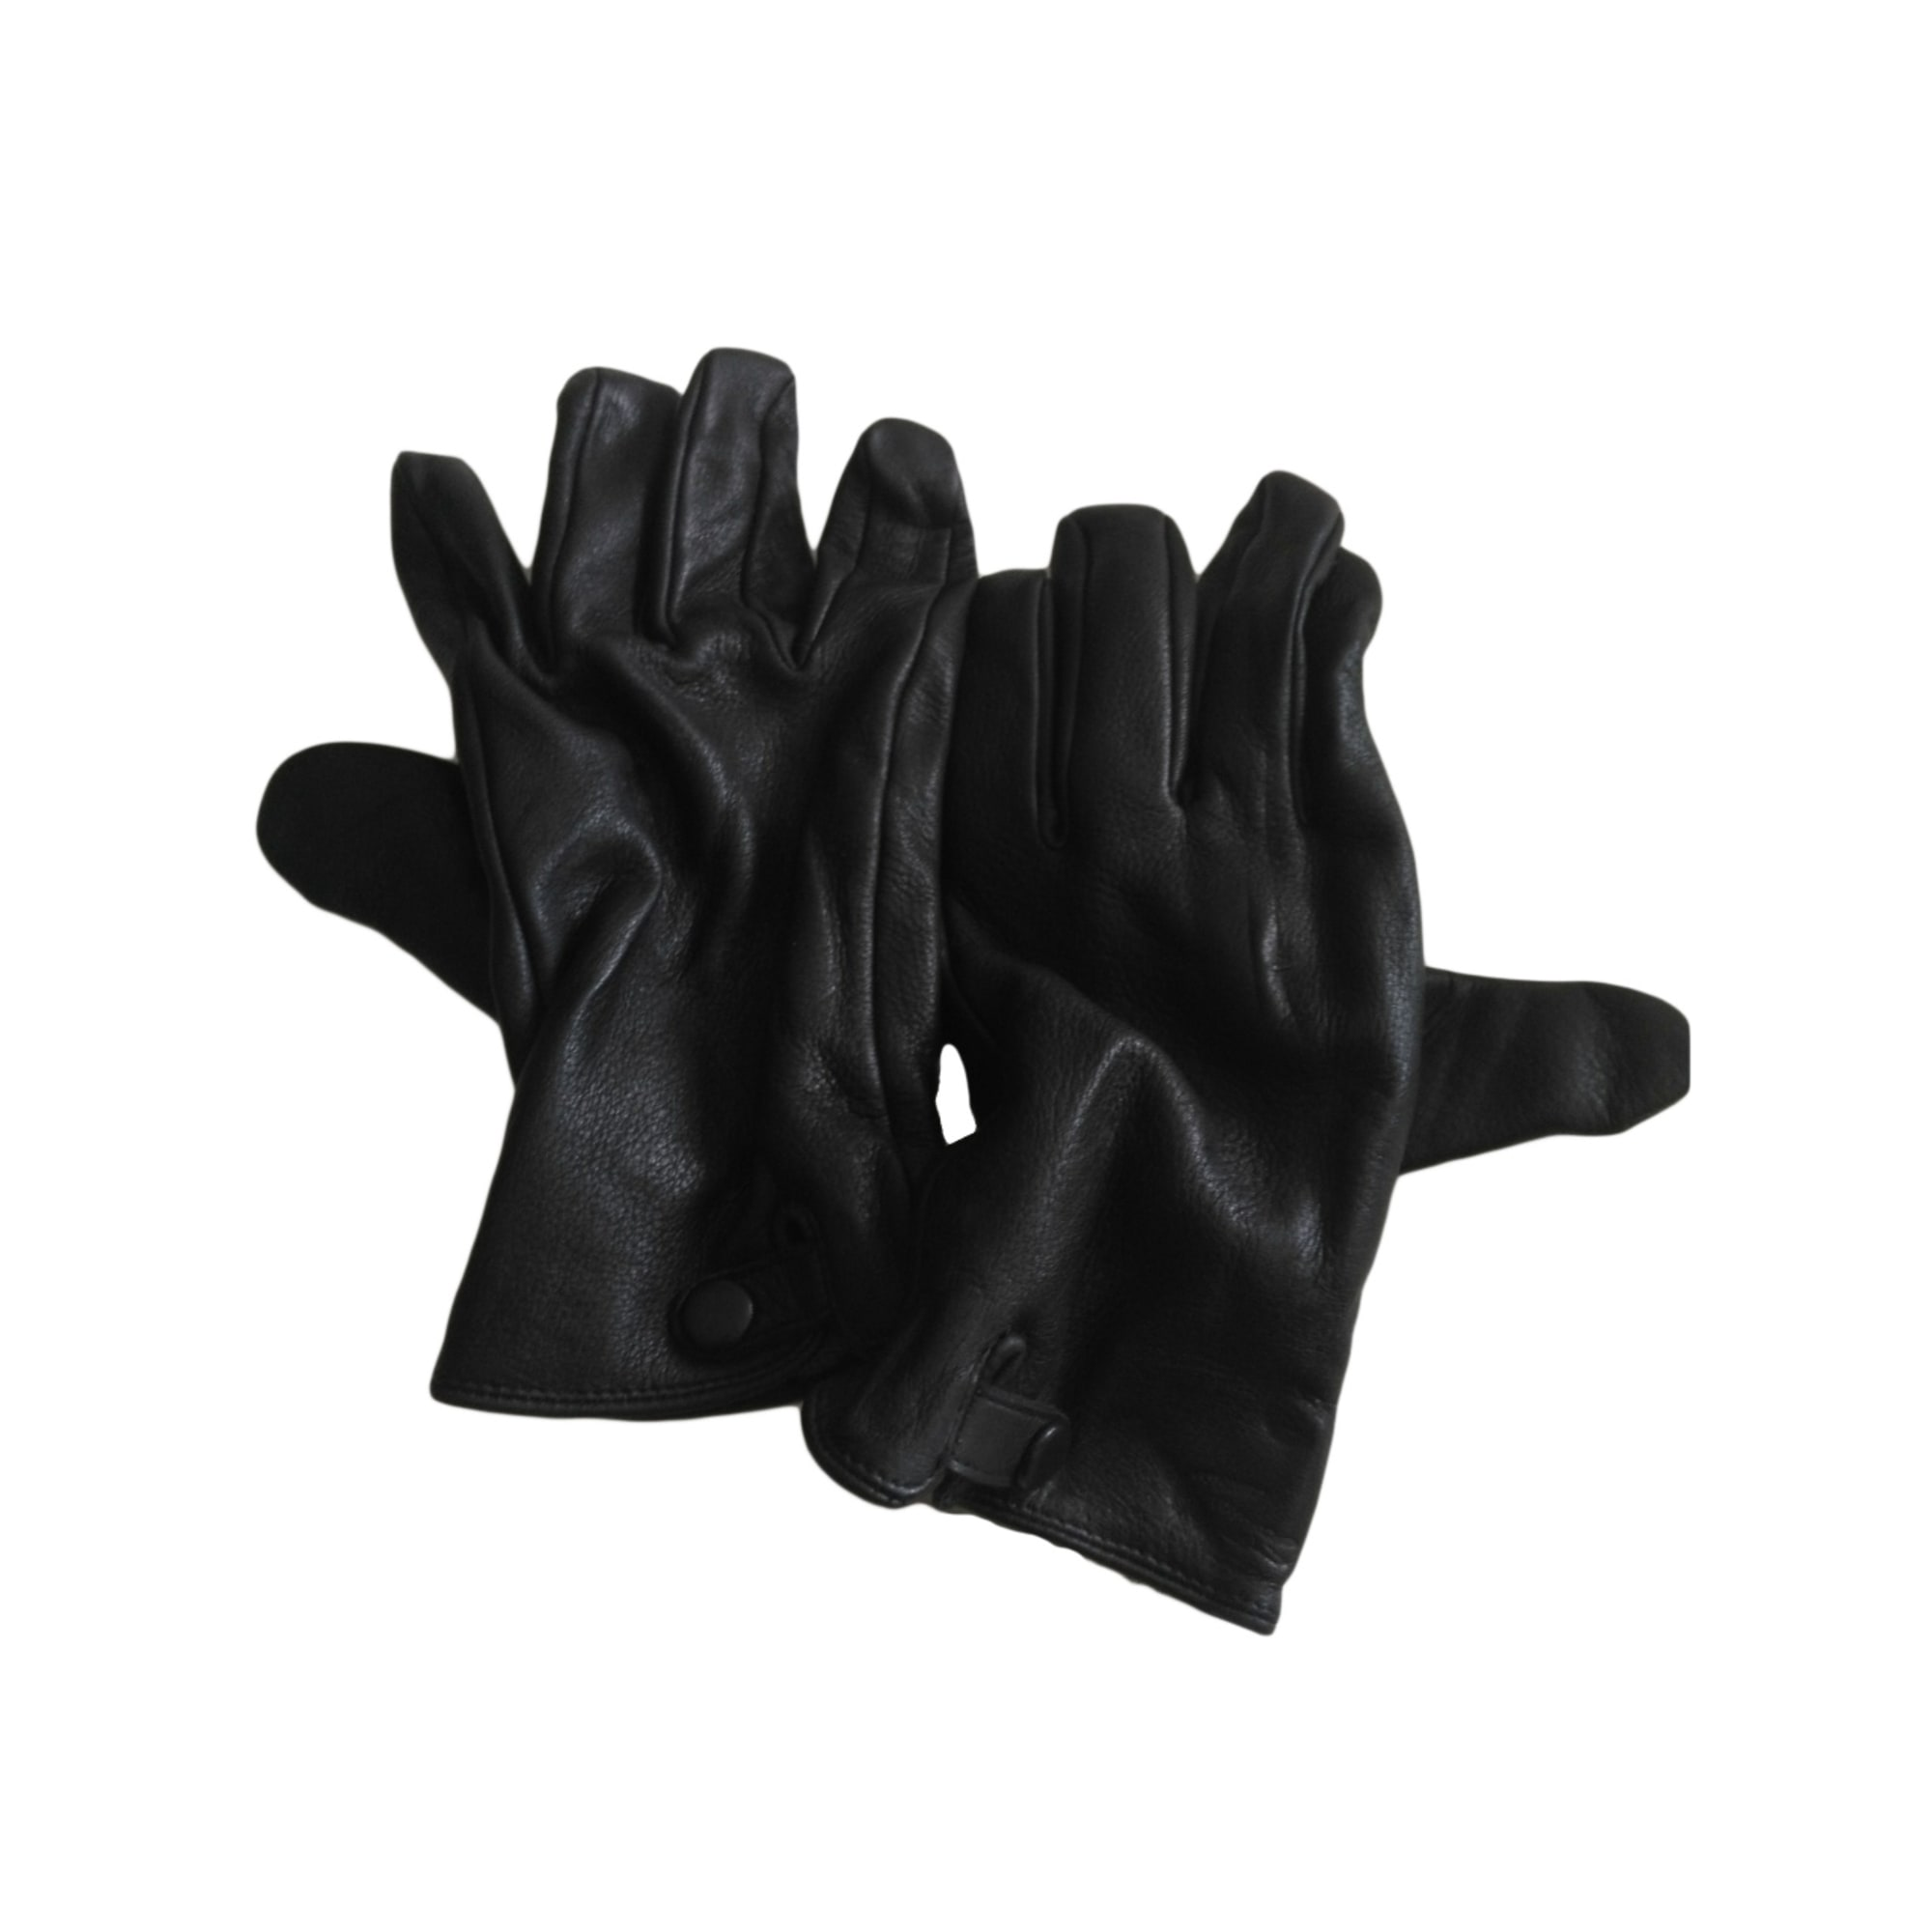 ed66a195d Gloves LACOSTE Other black - 7607362